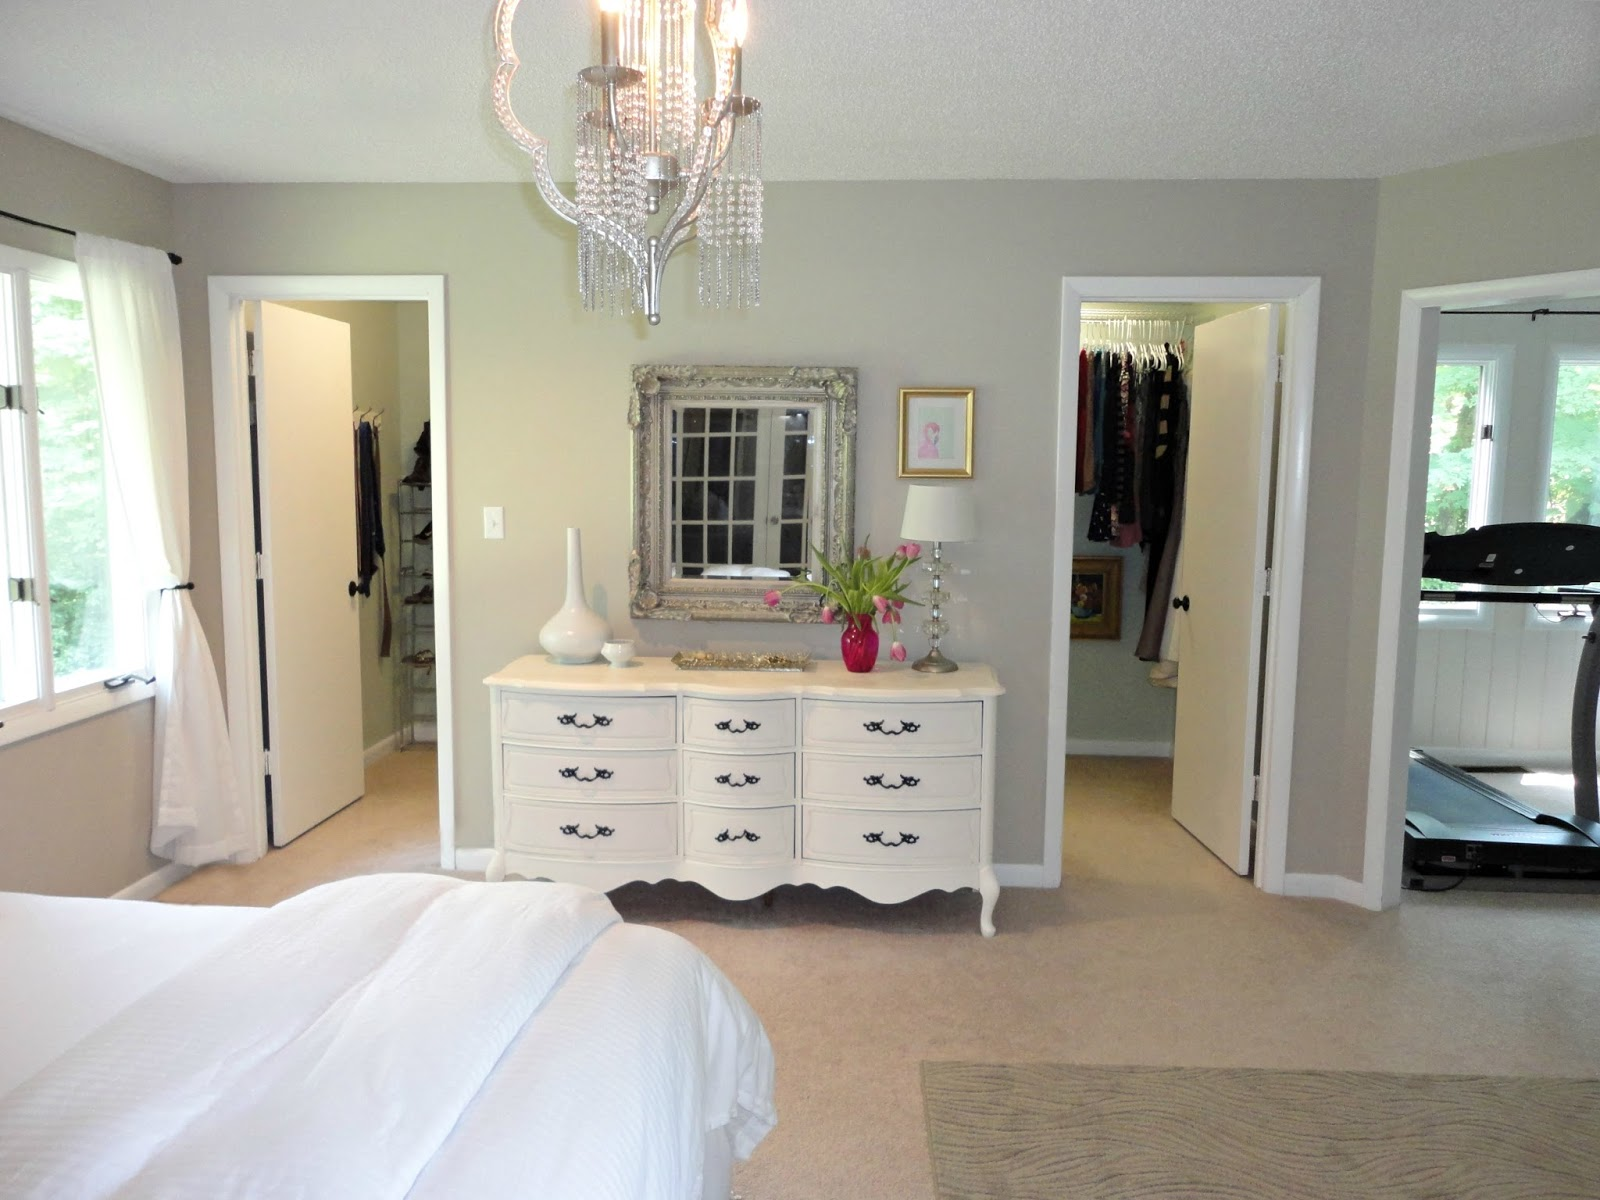 Classic Master Bedroom Design With Walk In Closet And White Vintage Vanity Wall Mirror